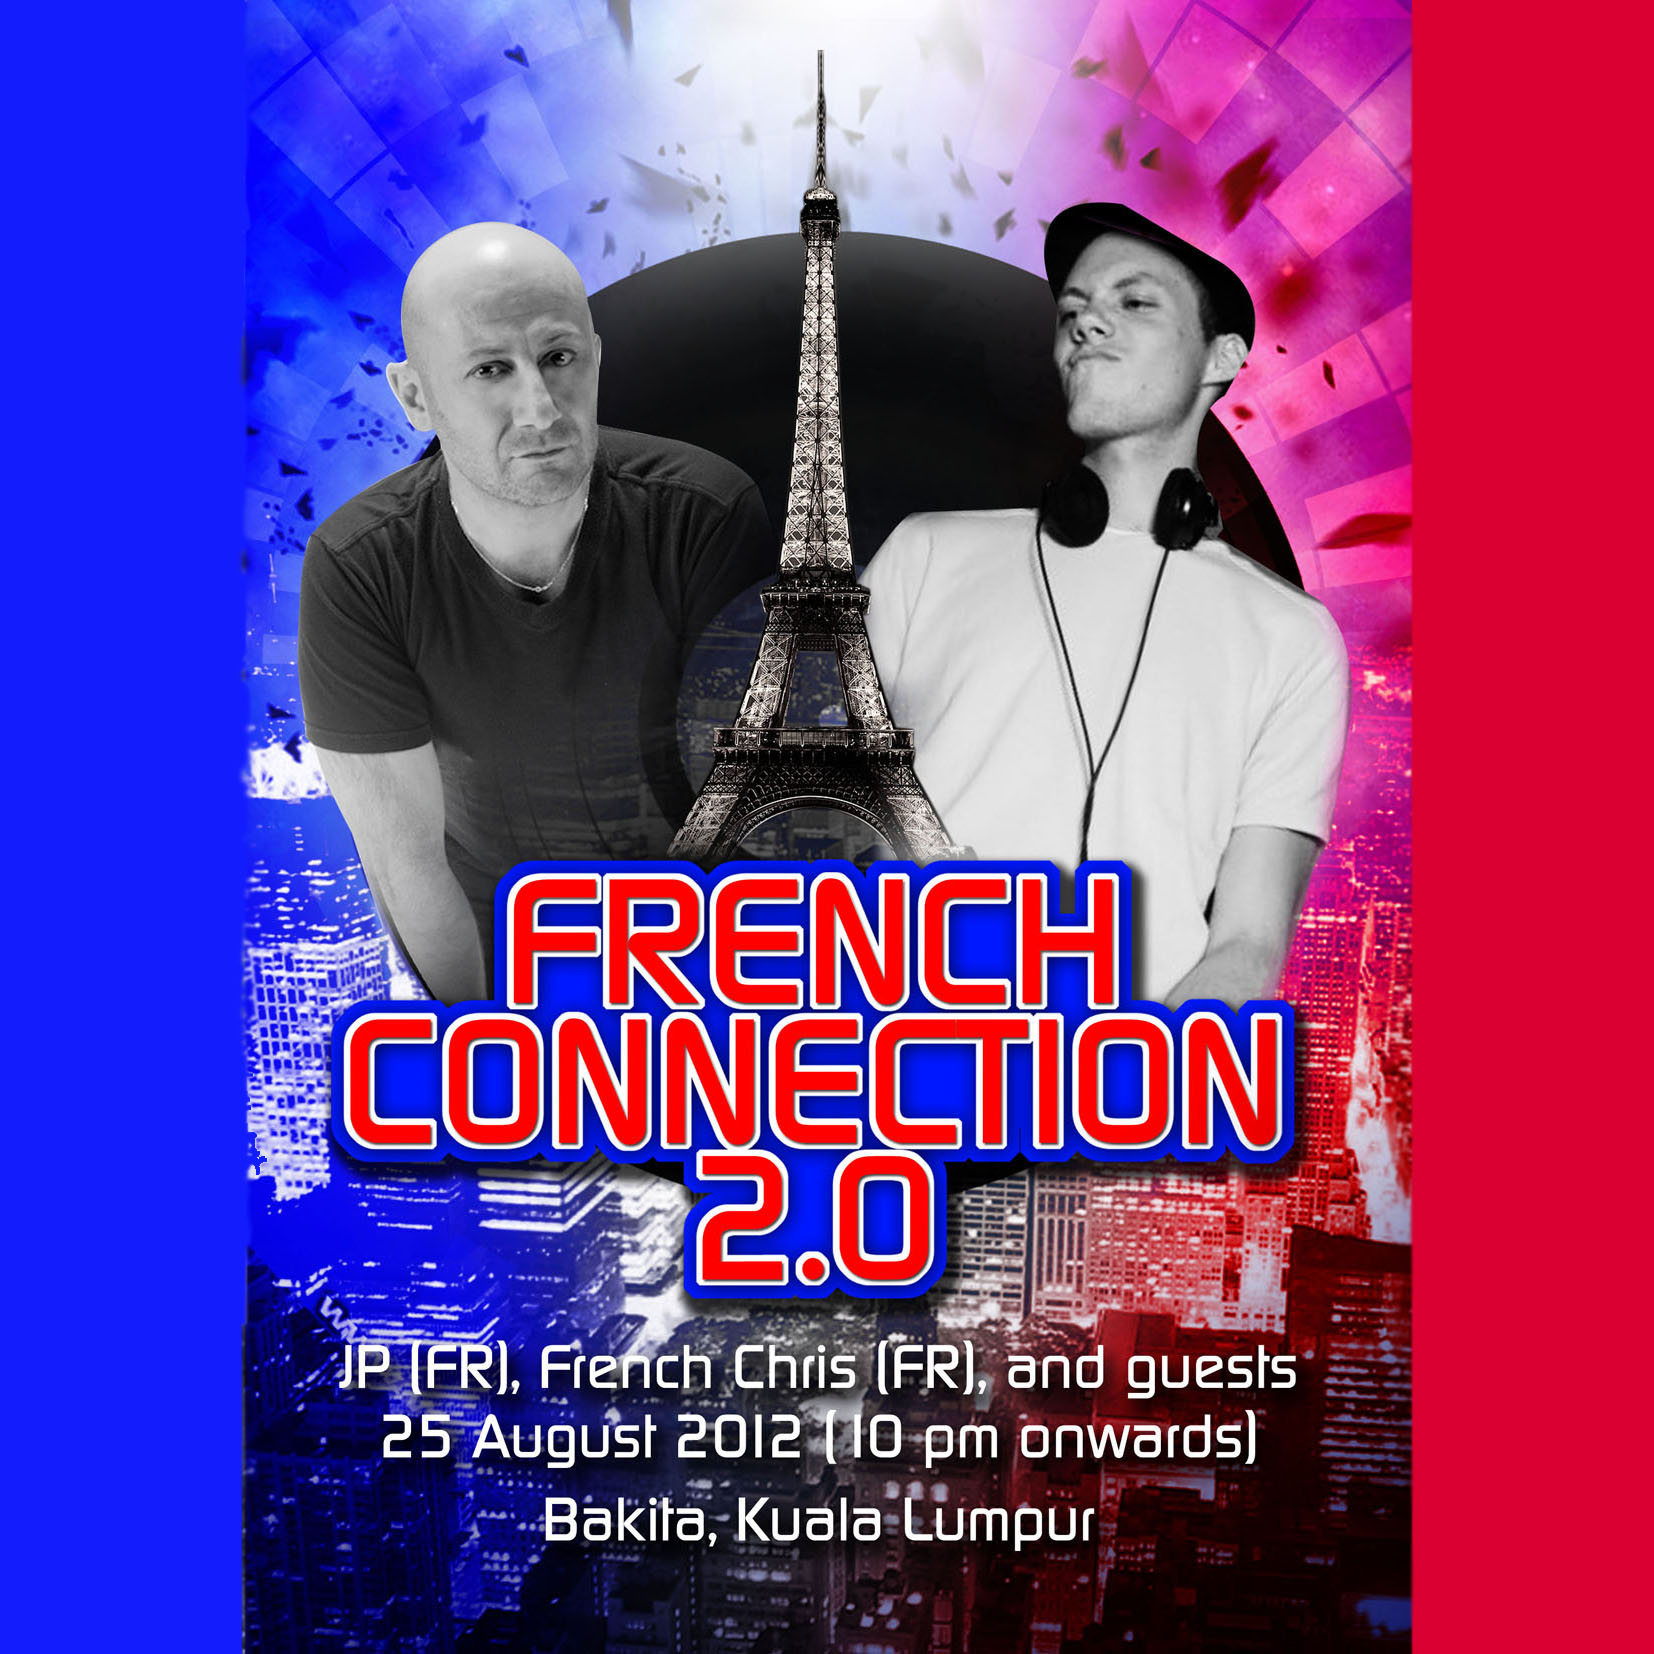 JP Lantieri - The French Connection 2.0